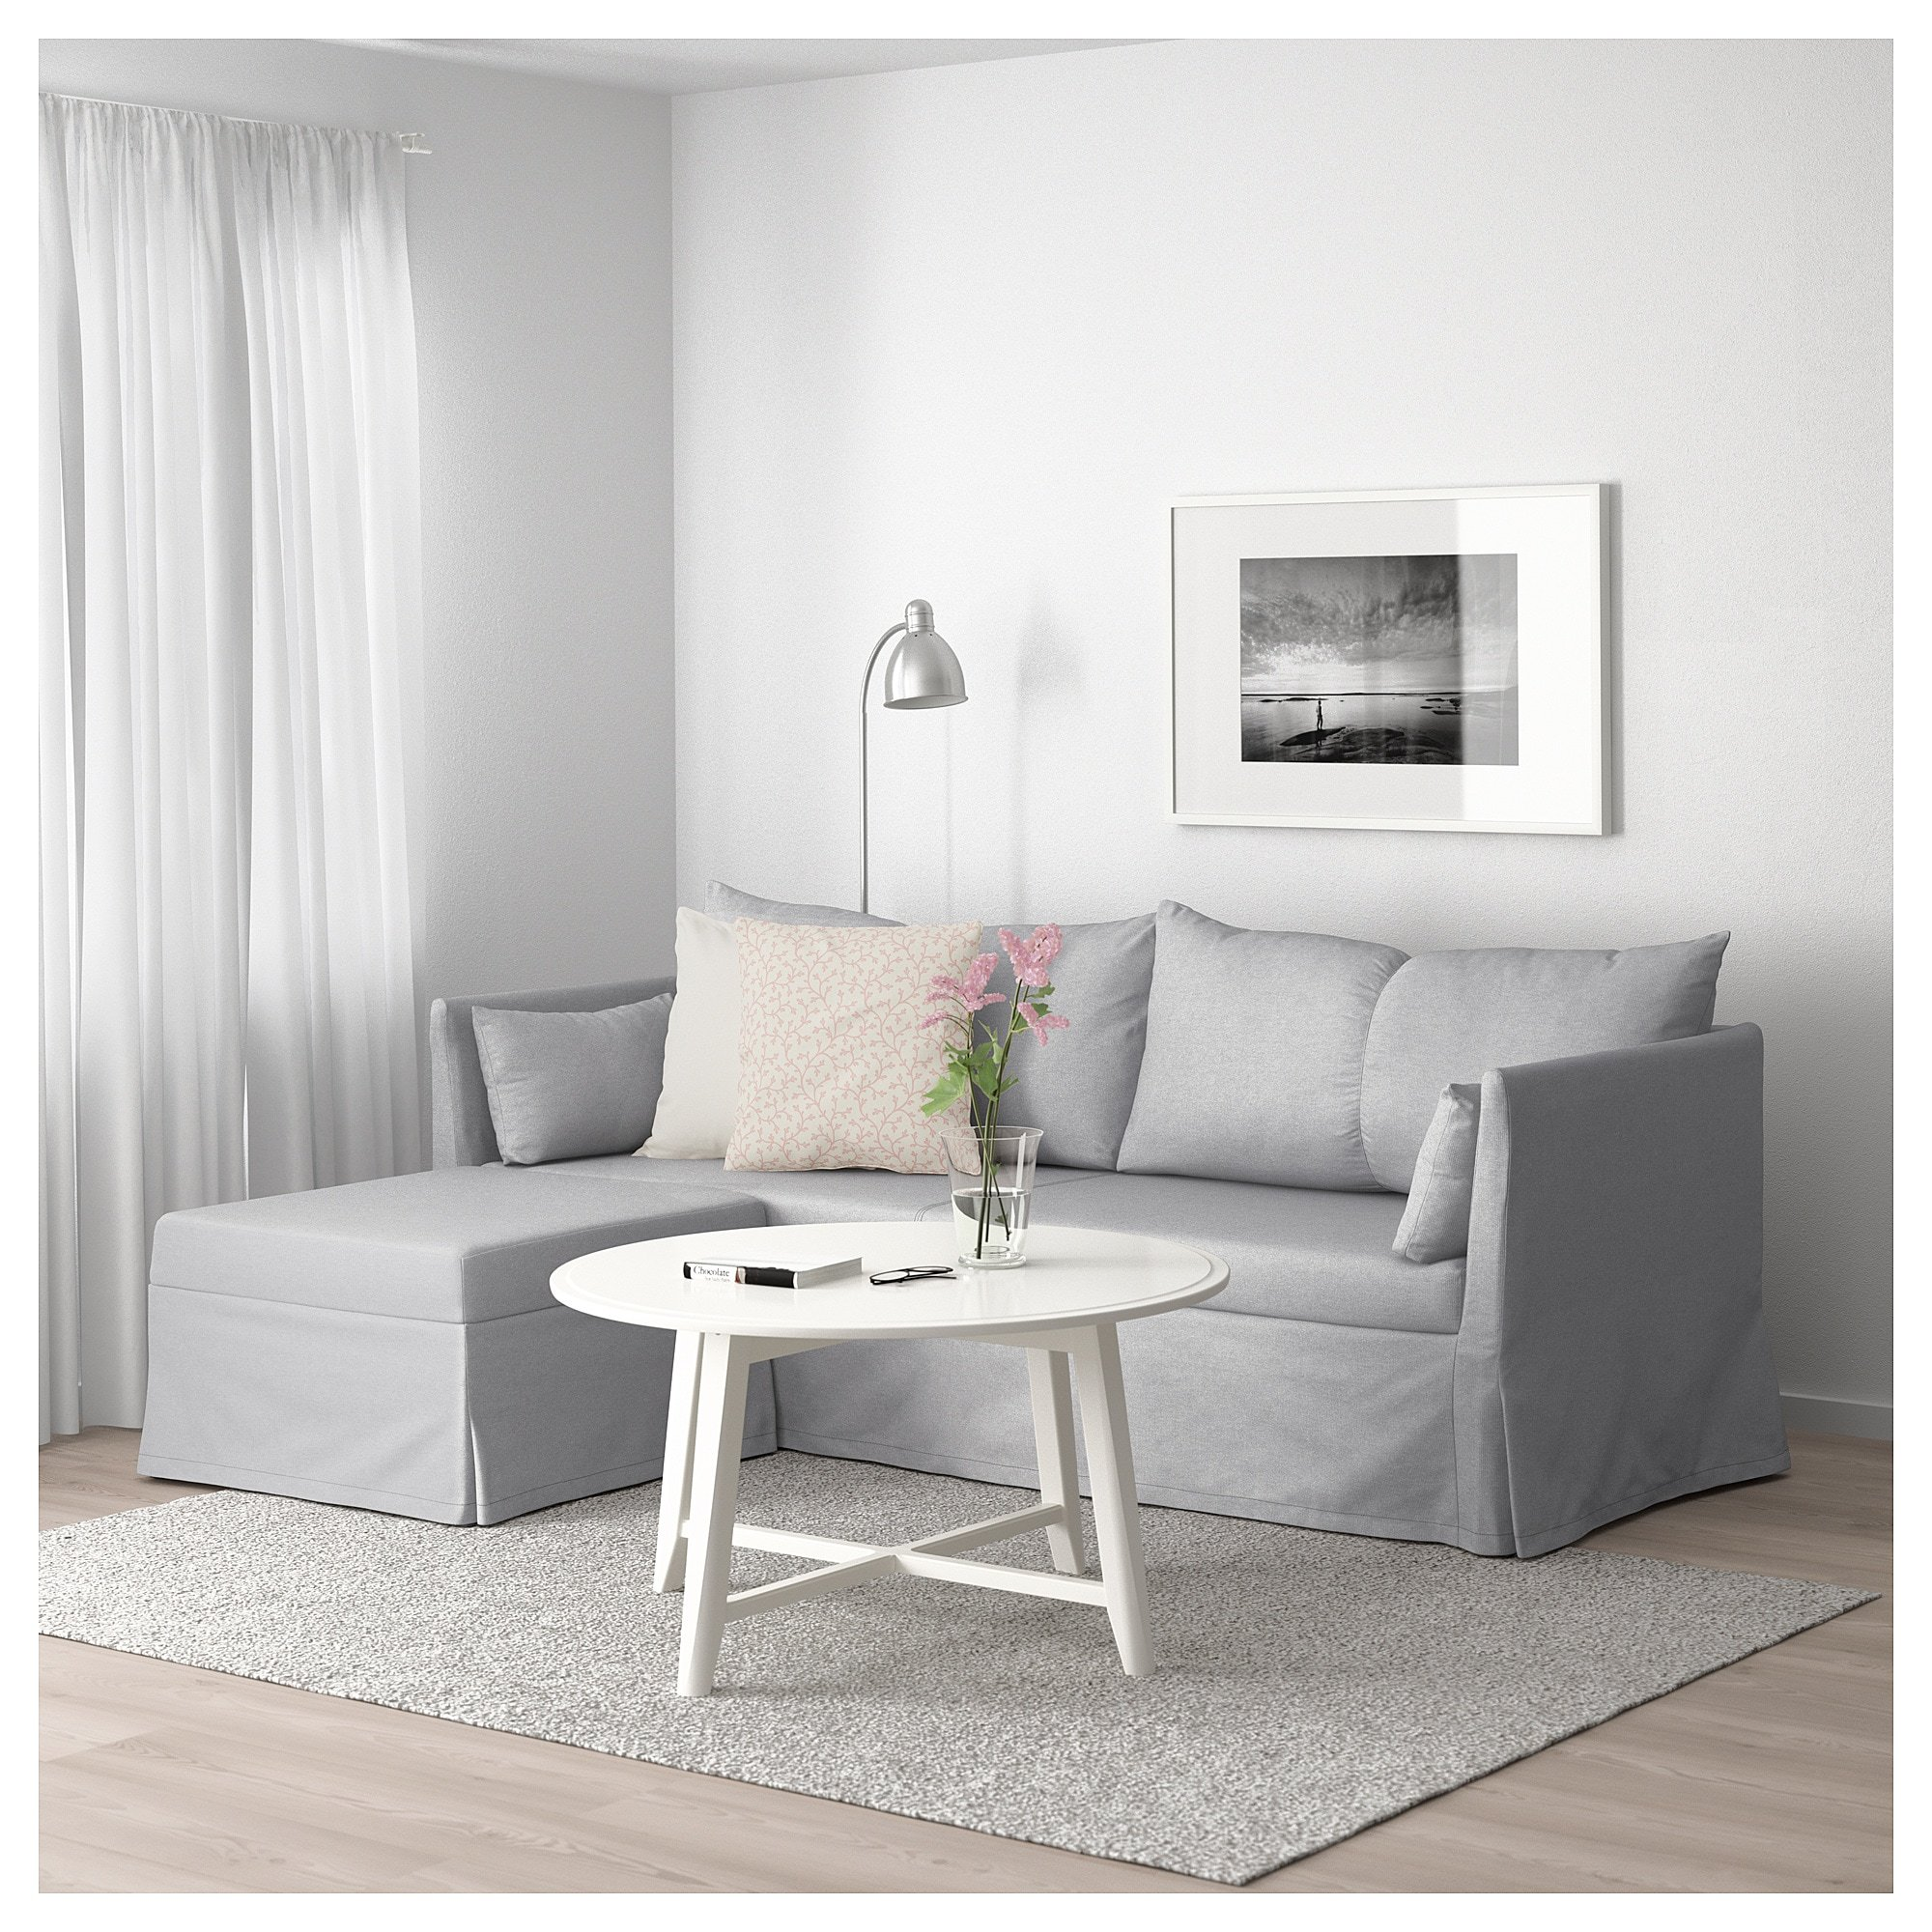 Bettsofa Ypperlig Ikea Bråthult And Sandbacken Review Same Frame Different Name